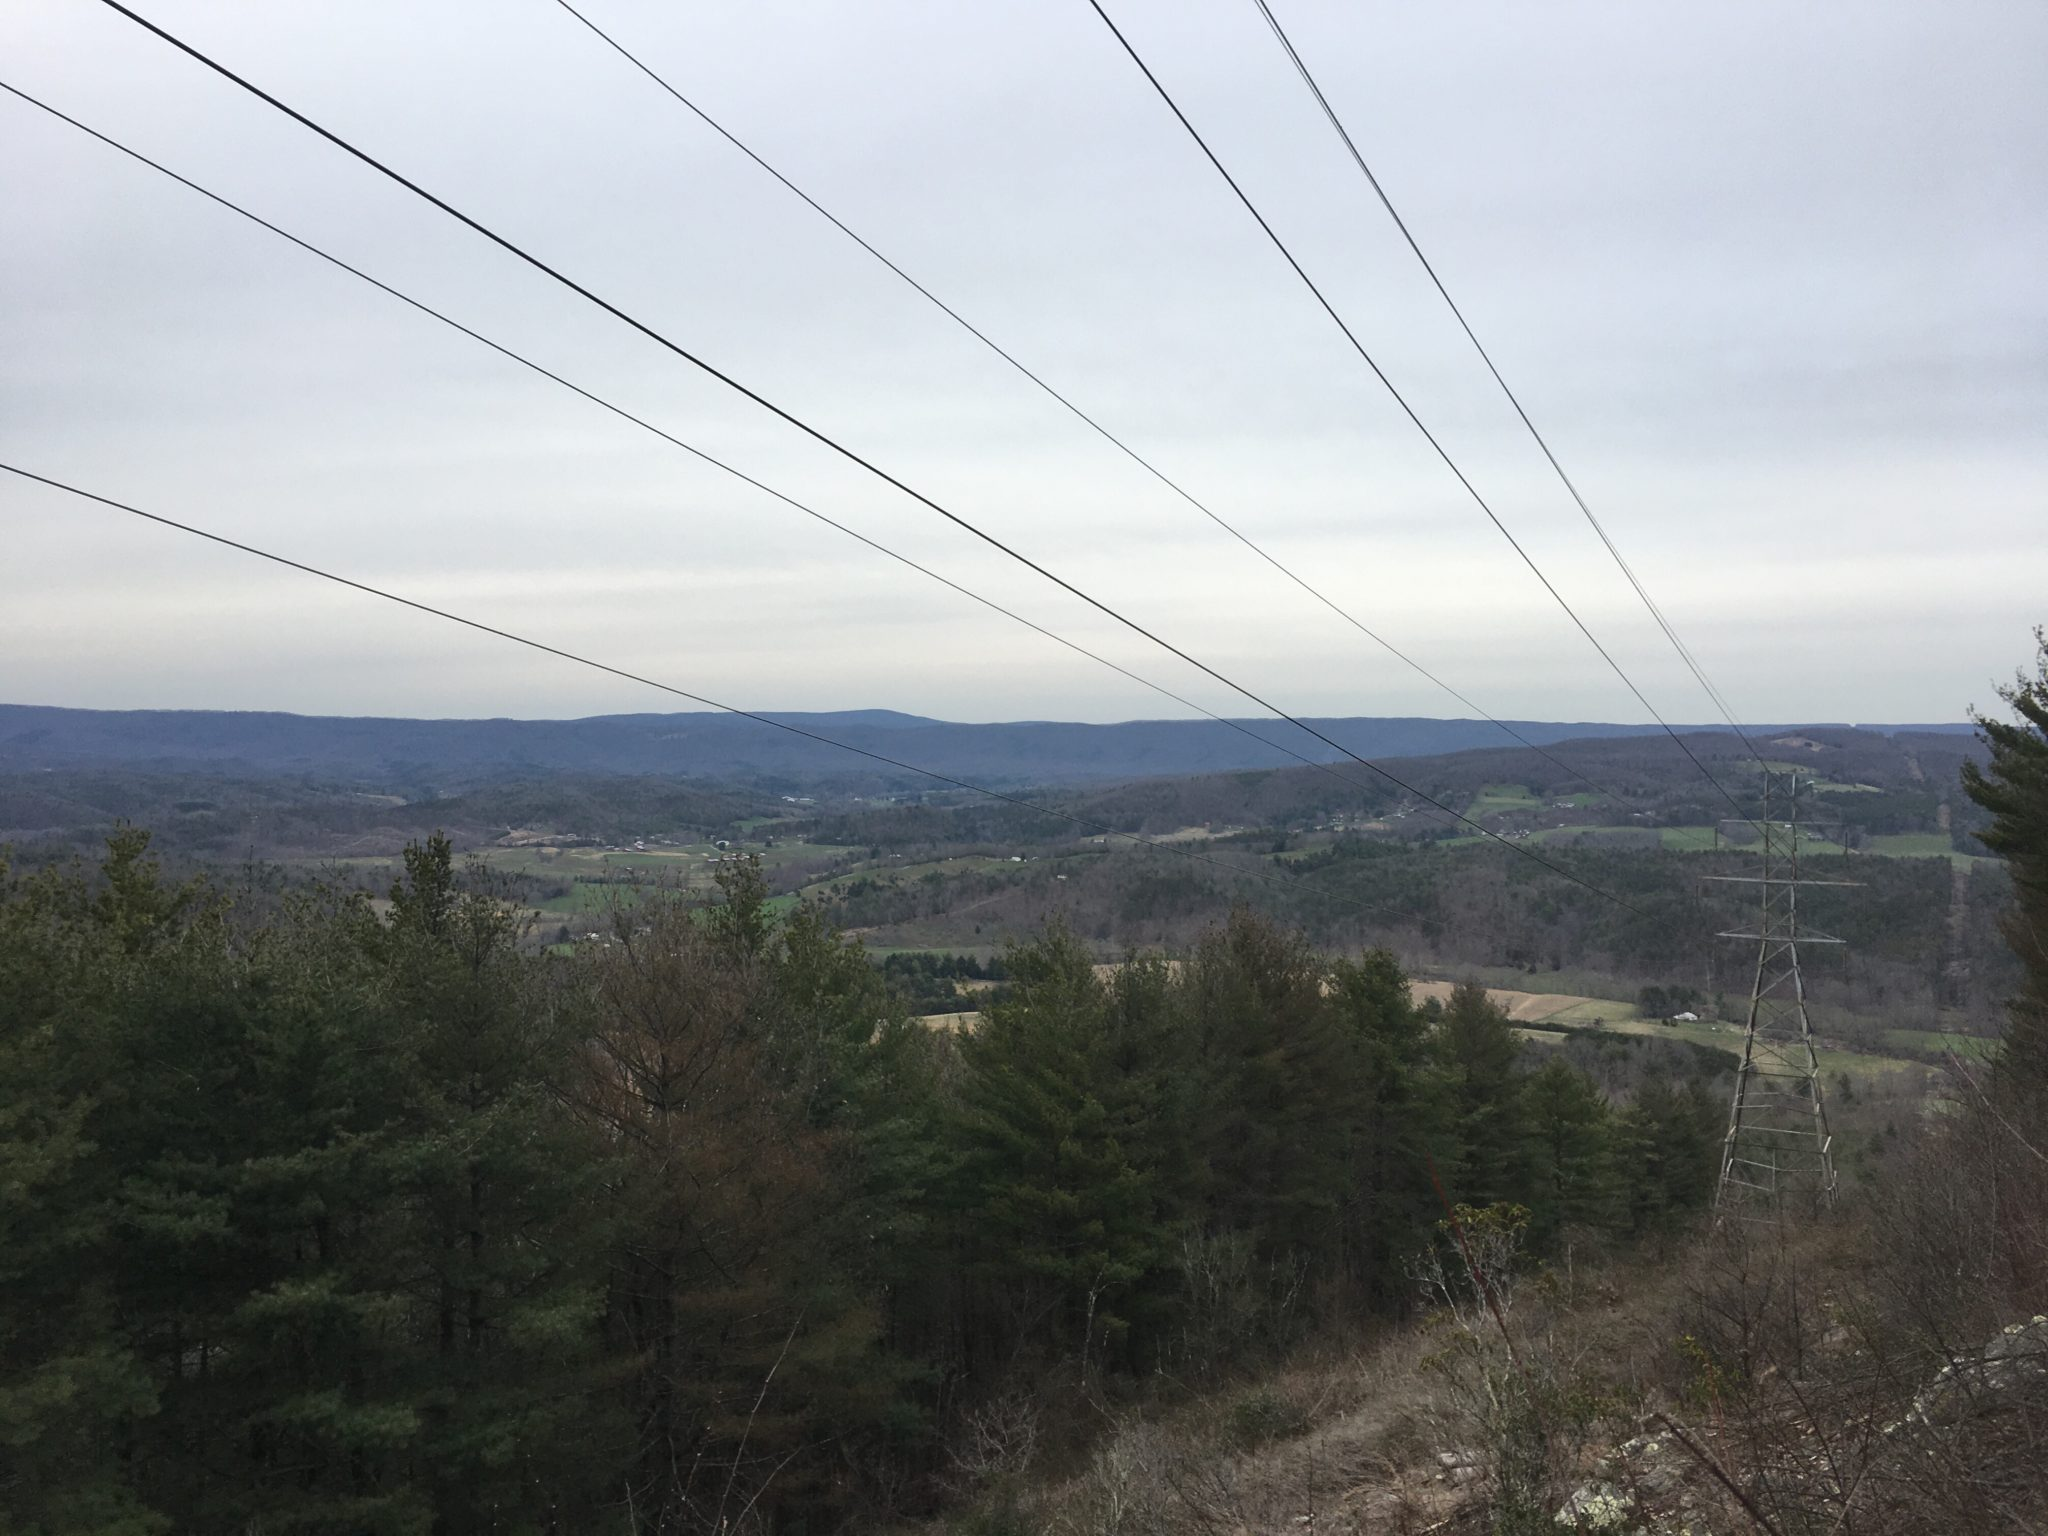 Sometimes the open areas clear-cut for the powerlines are the only places to get a good view